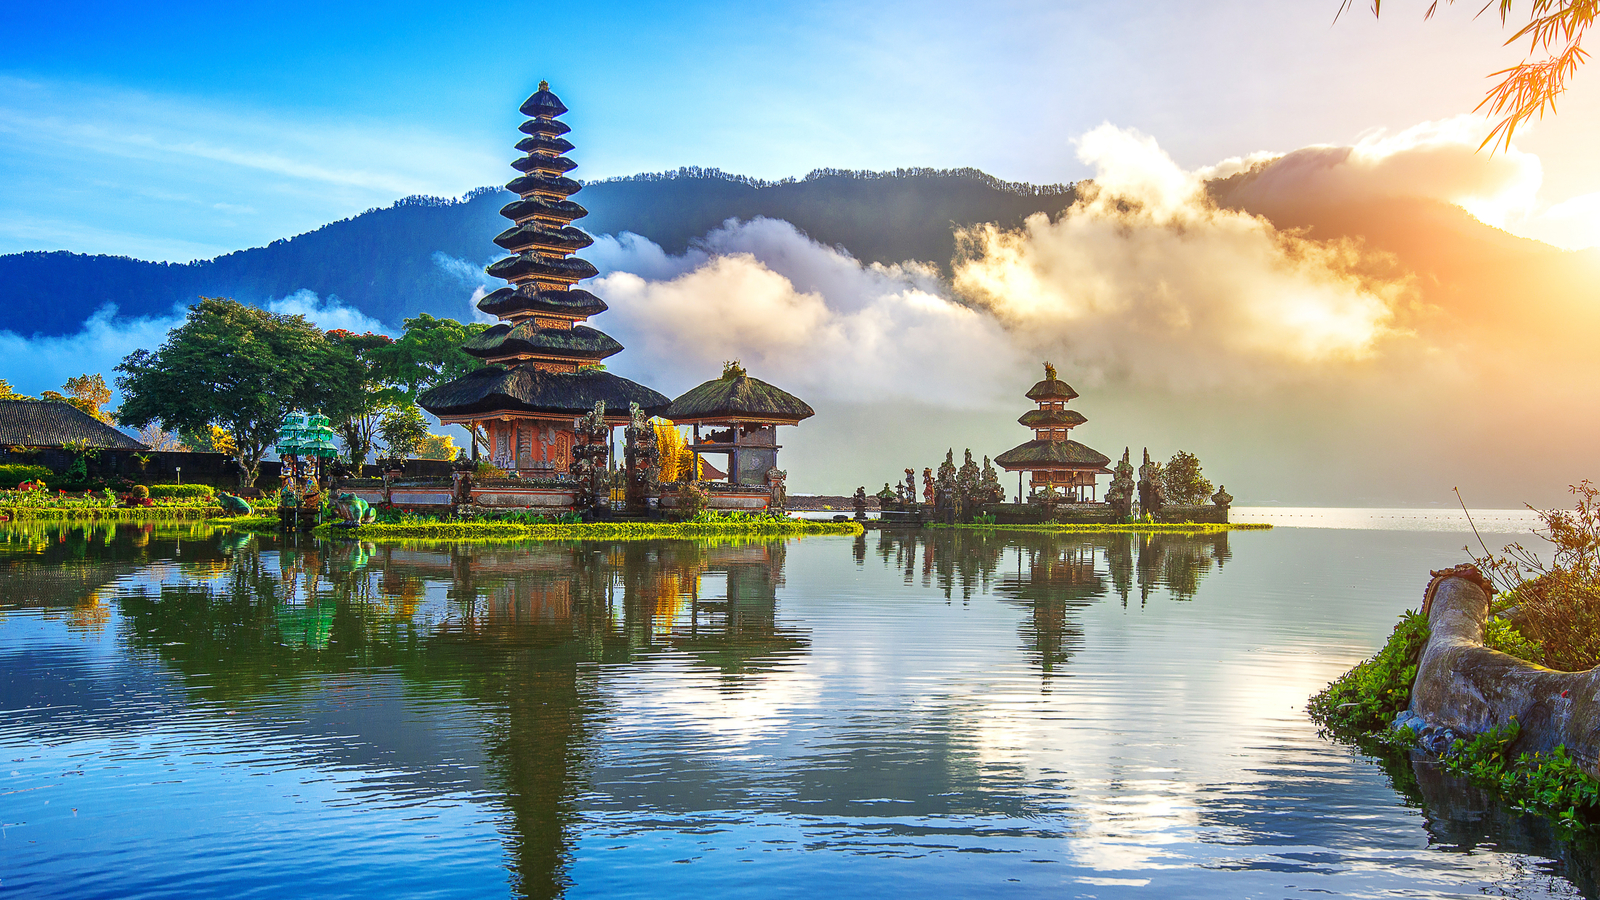 Tipping in Indonesia: The Indonesia Tipping Guide